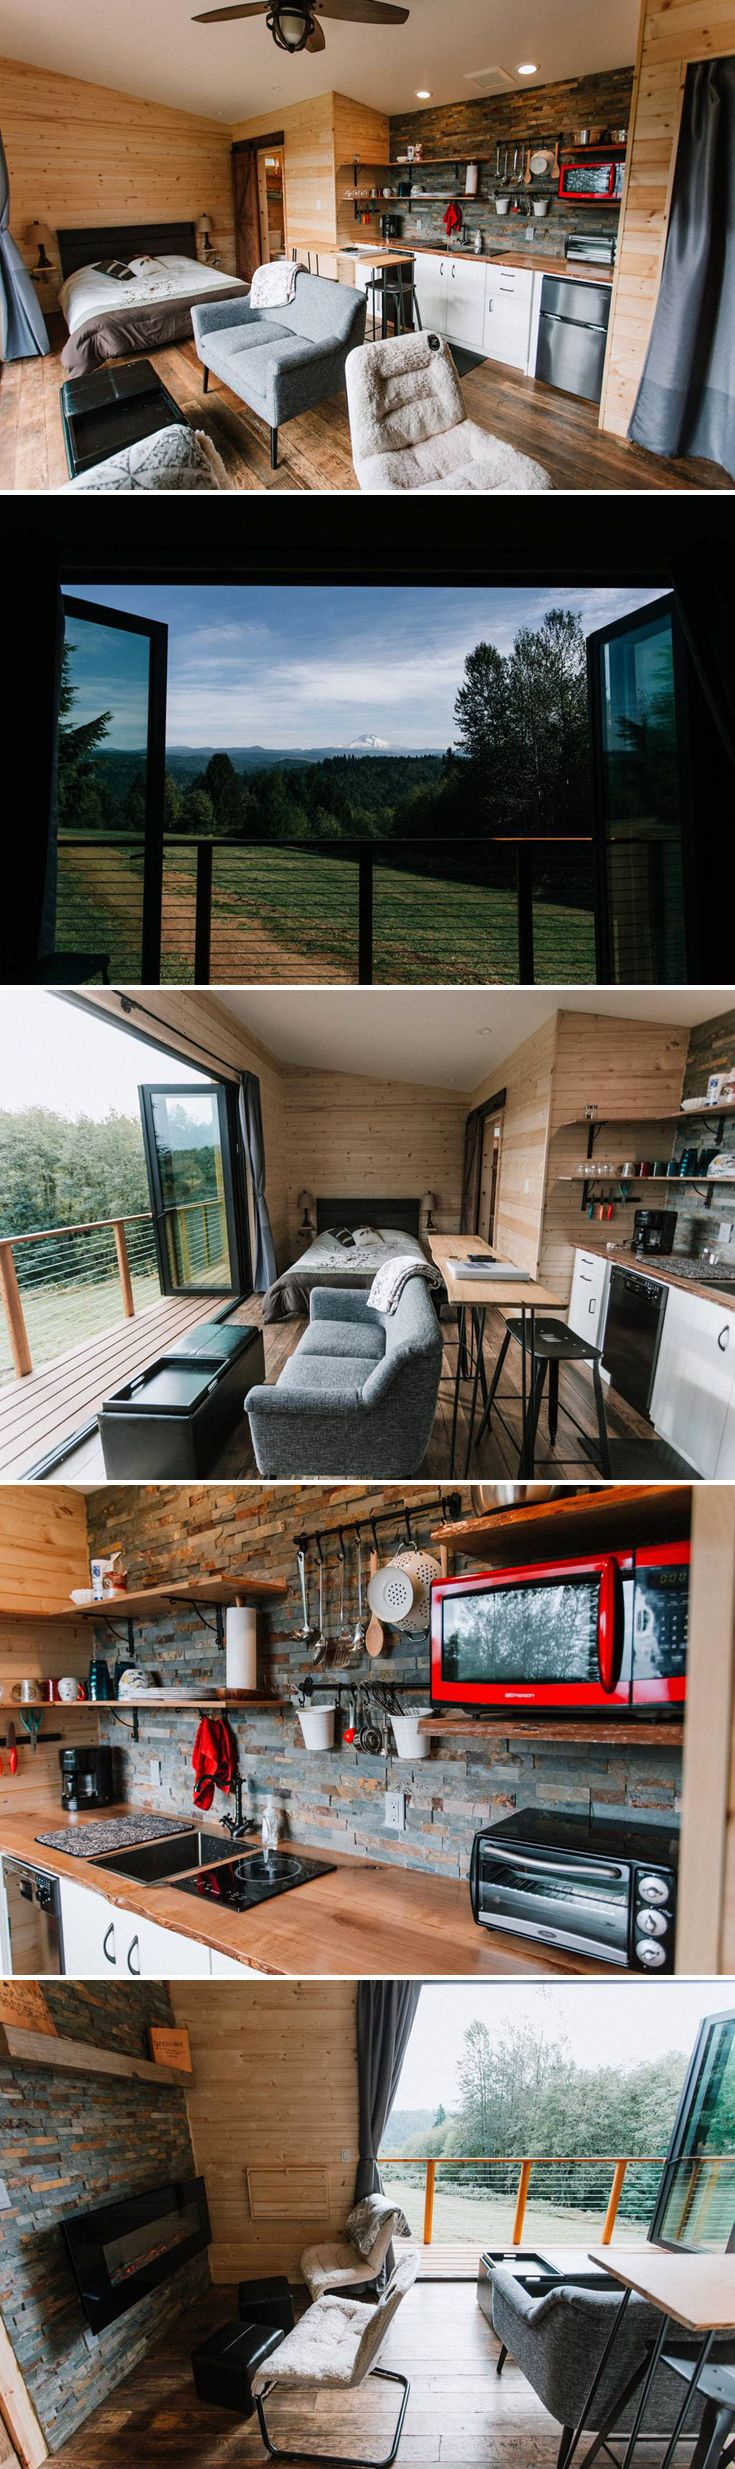 With its moving window wall, the Mt Hood View Tiny House offers a spectacular view of Oregon's Mt Hood. Reclaimed hardwood floors, live edge countertops, and slate tile give the home a rustic cabin feel.